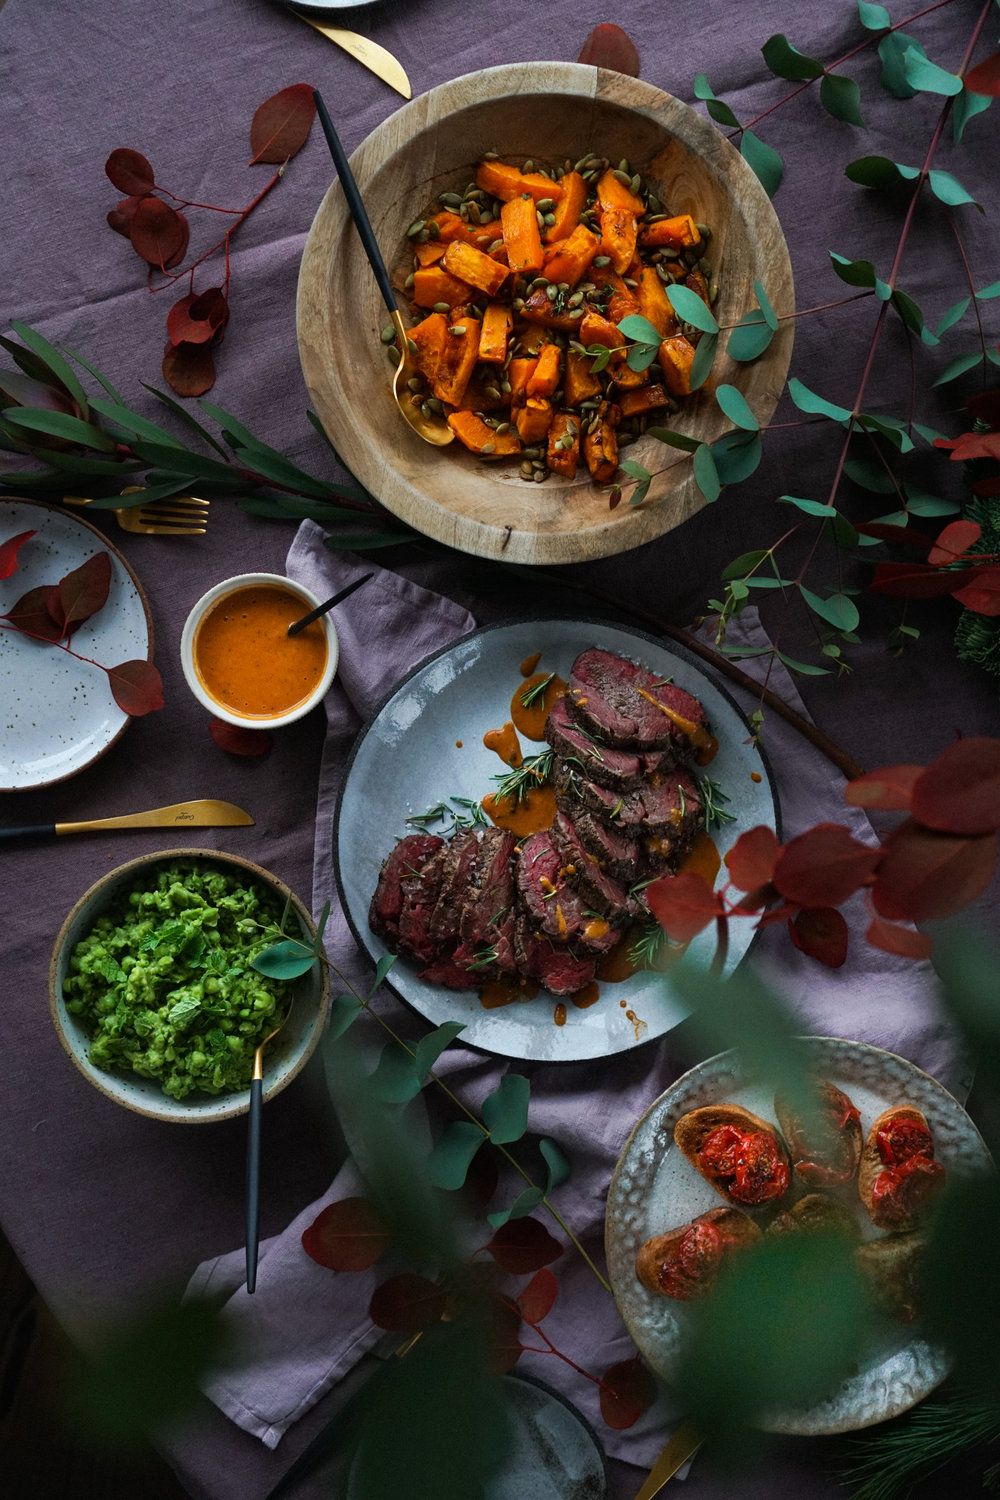 beef_tenderloin_with_sea_buckthorn_sauce-13.jpg